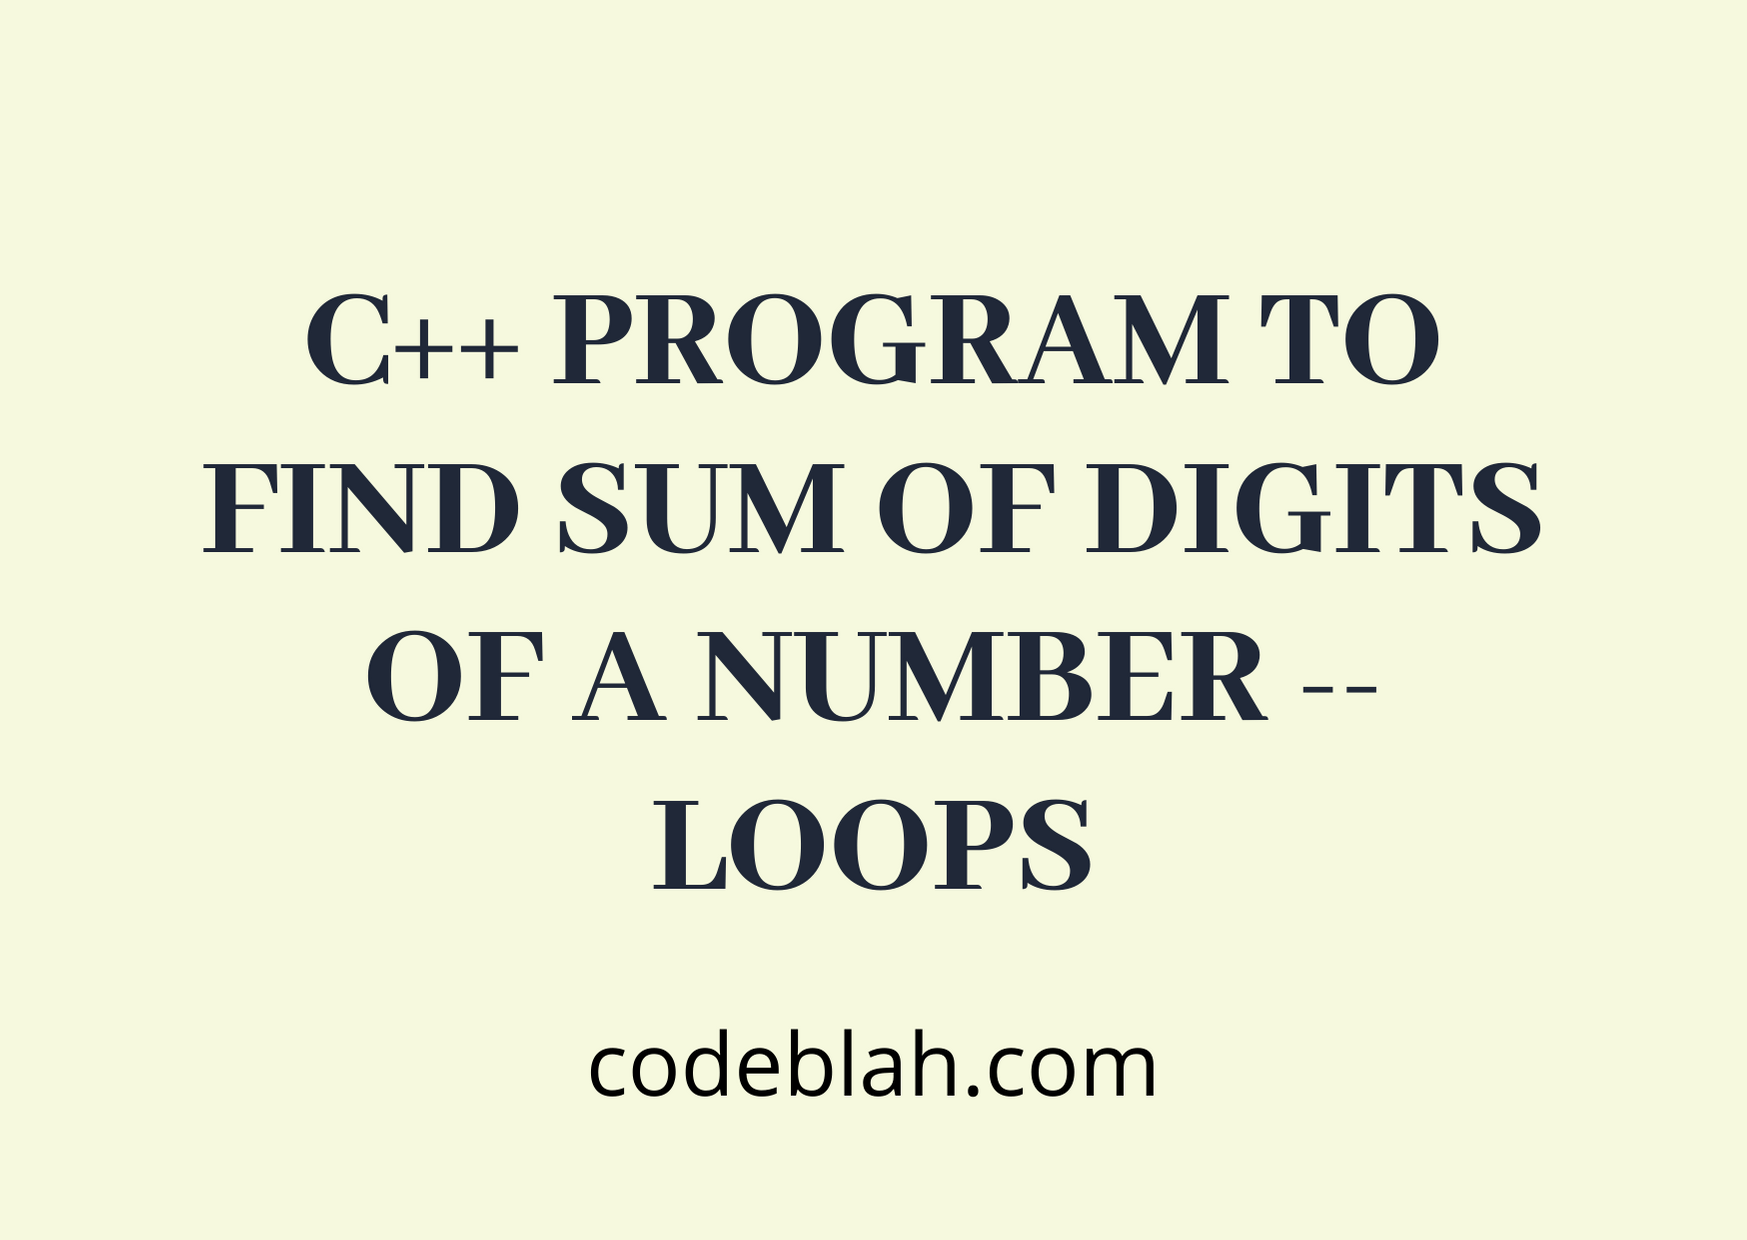 C++ Program to Find Sum of Digits of a Number